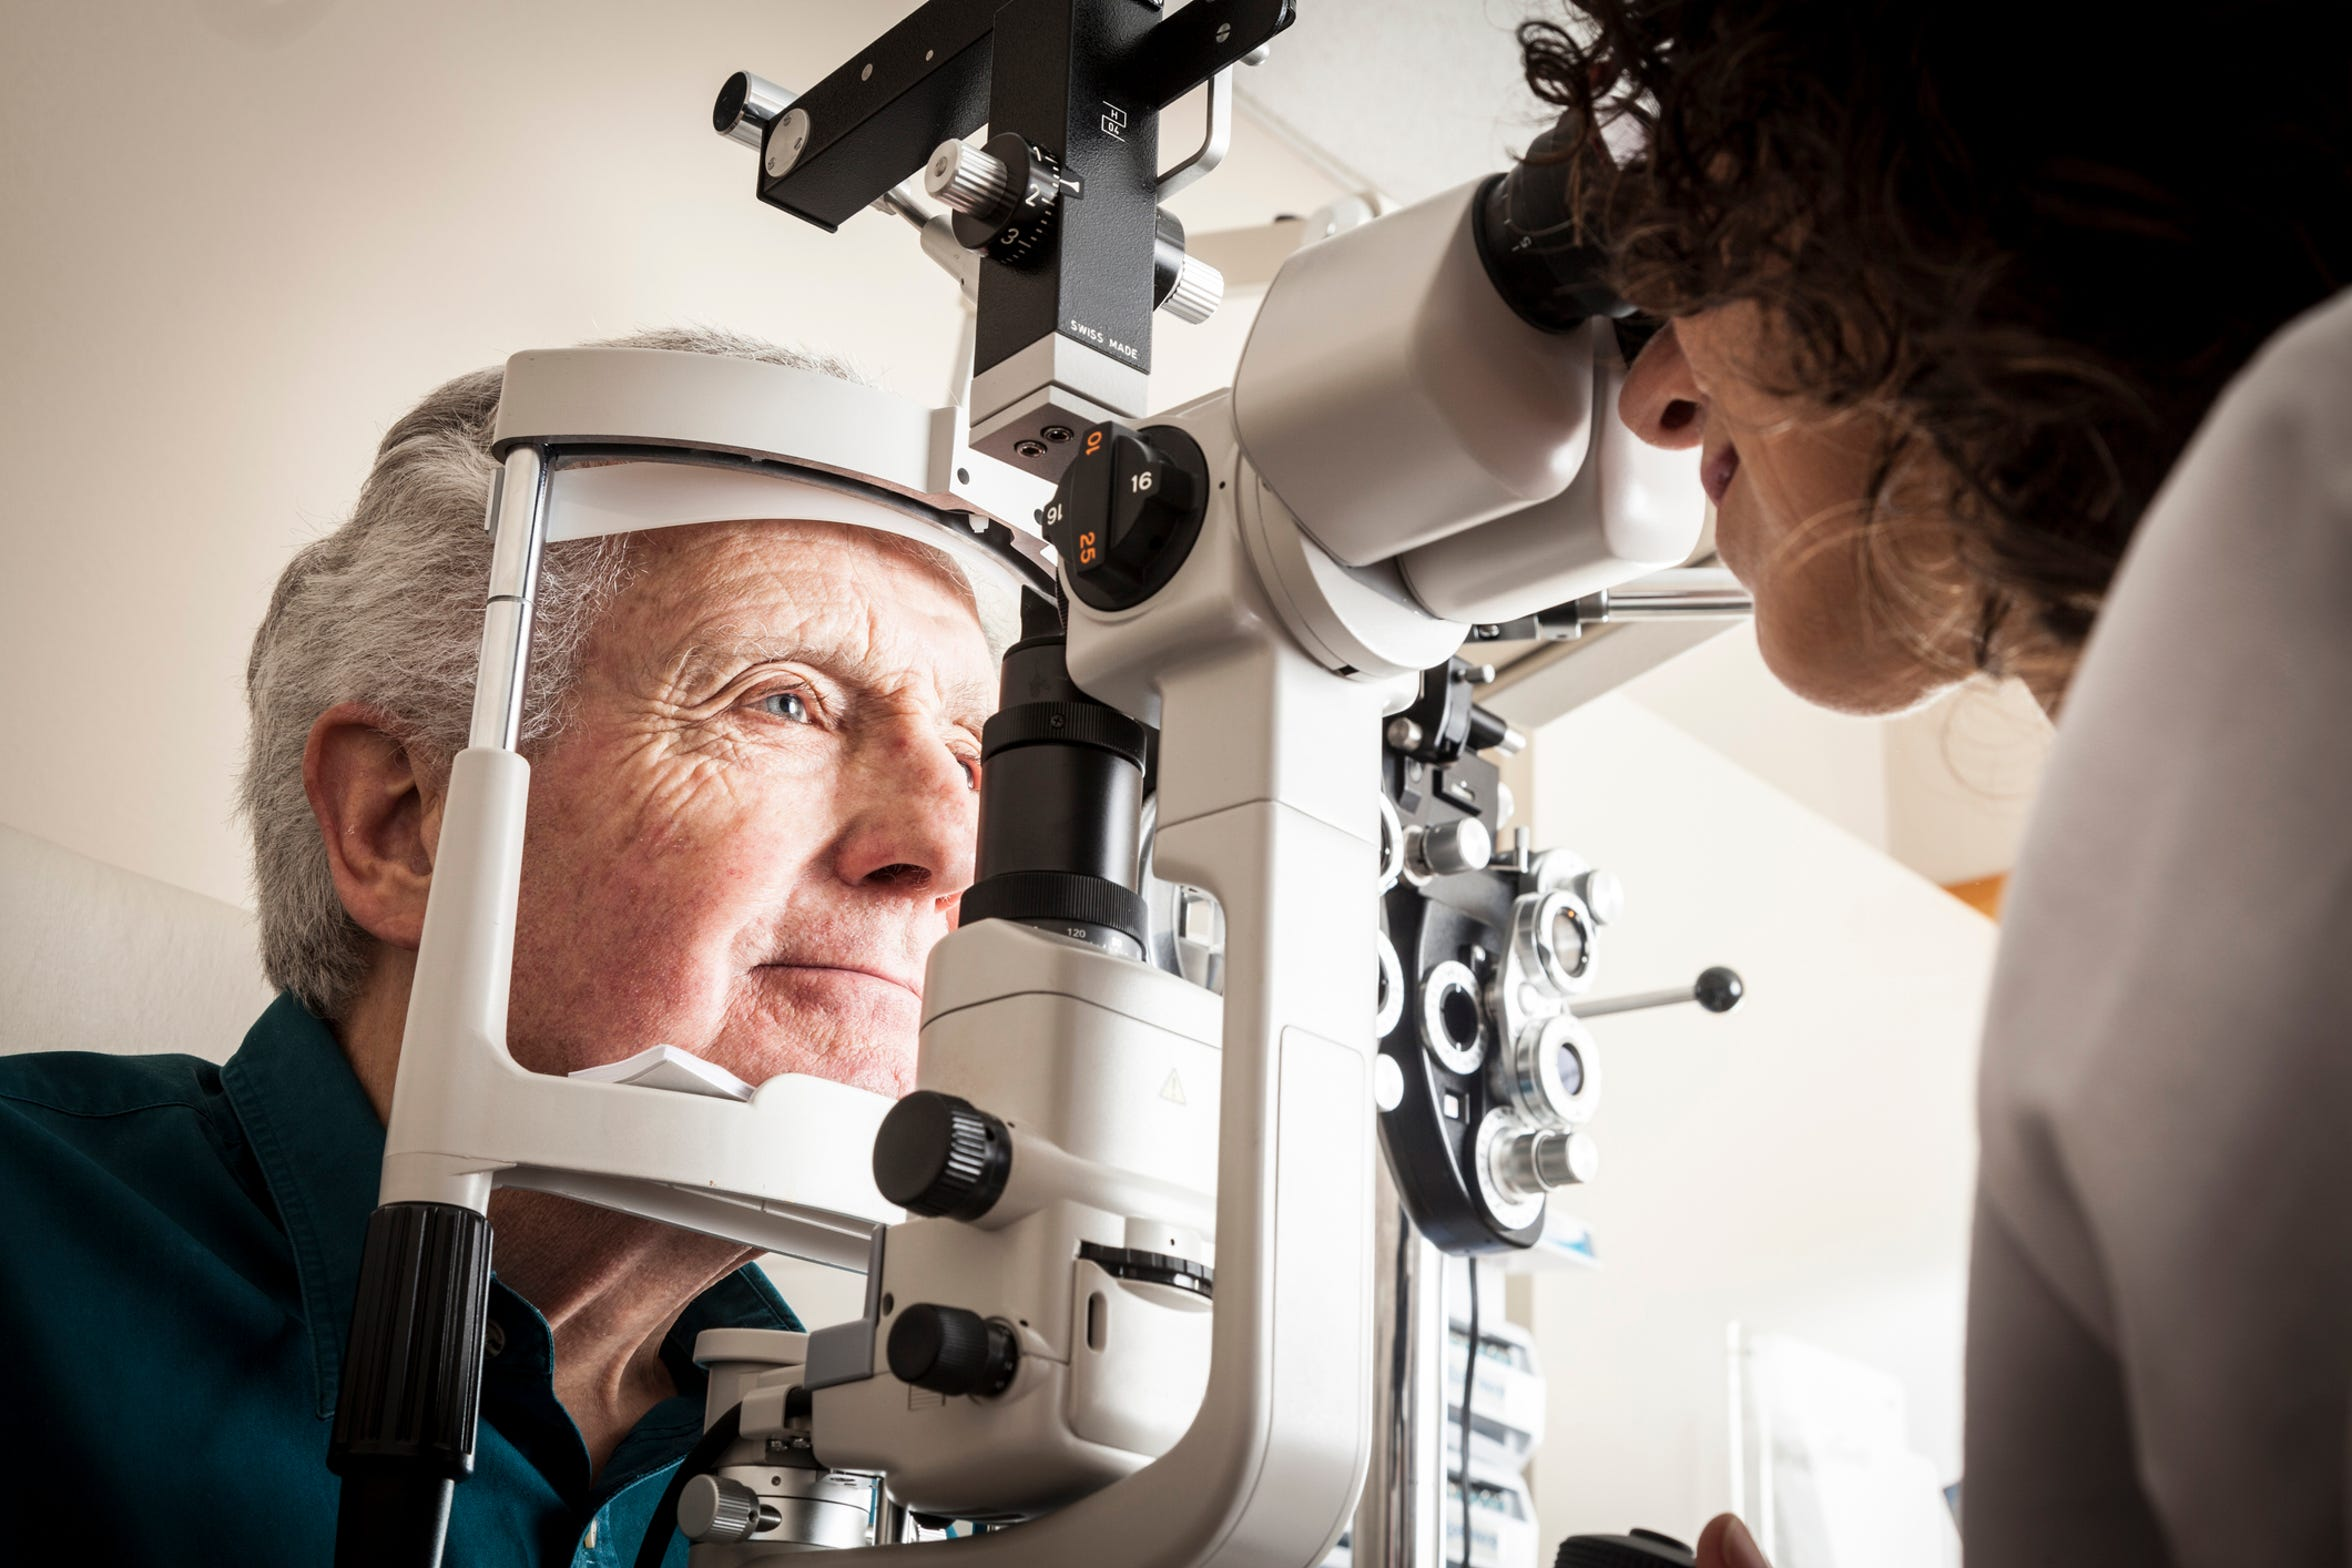 Patients with diabetes should schedule an annual vision screening, even if they don't have any vision problems or diabetic retinopathy symptoms.